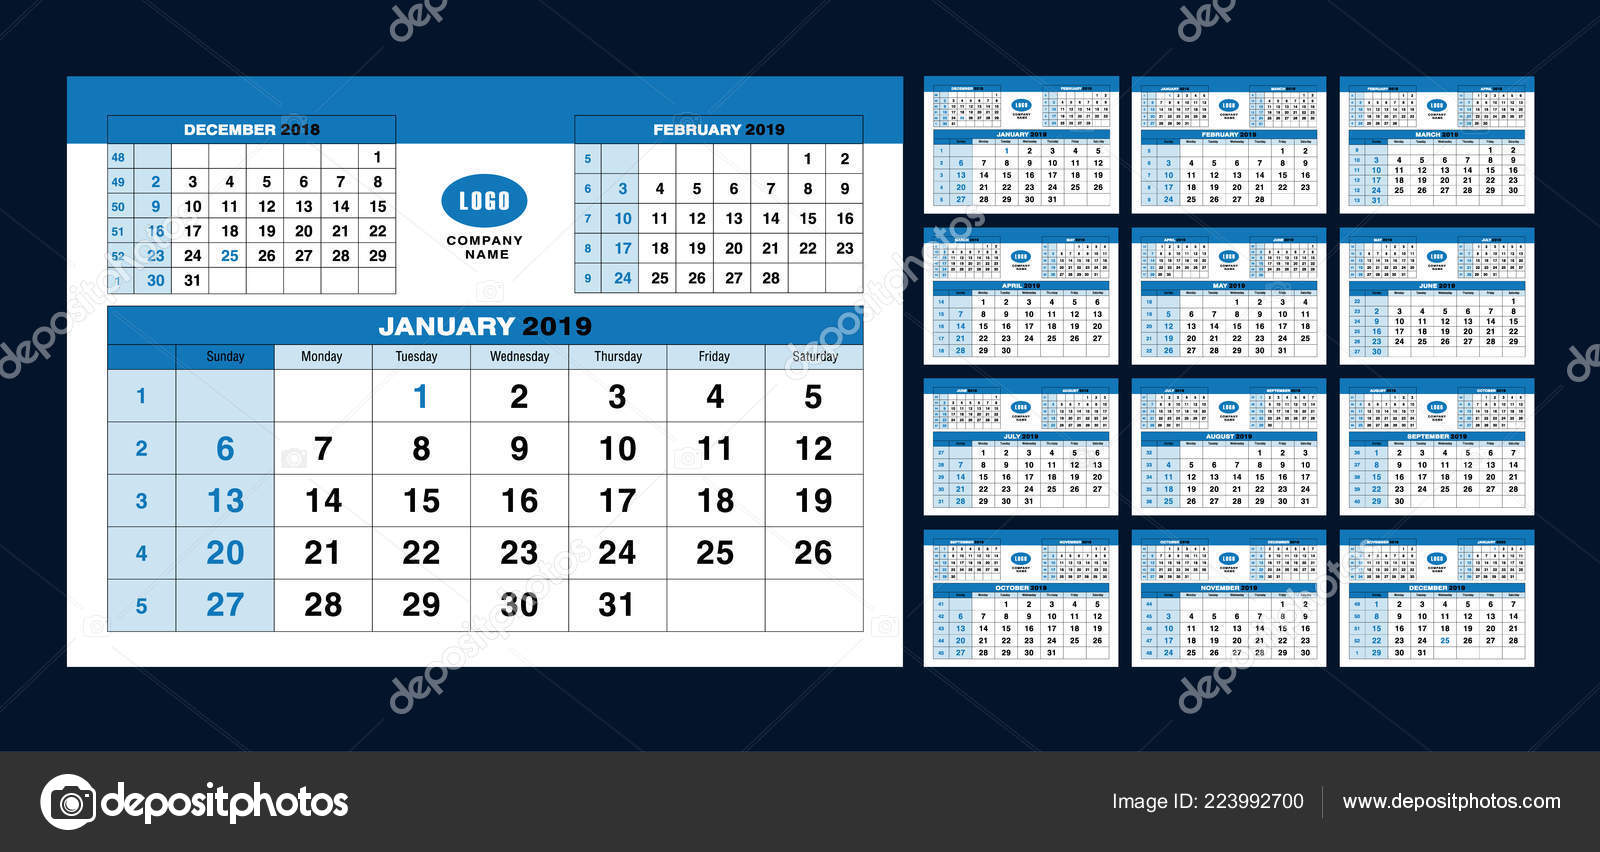 Calendar Pages To Print 2019.Calendar Template 2019 Years Set Calendar Pages Vector Design Print